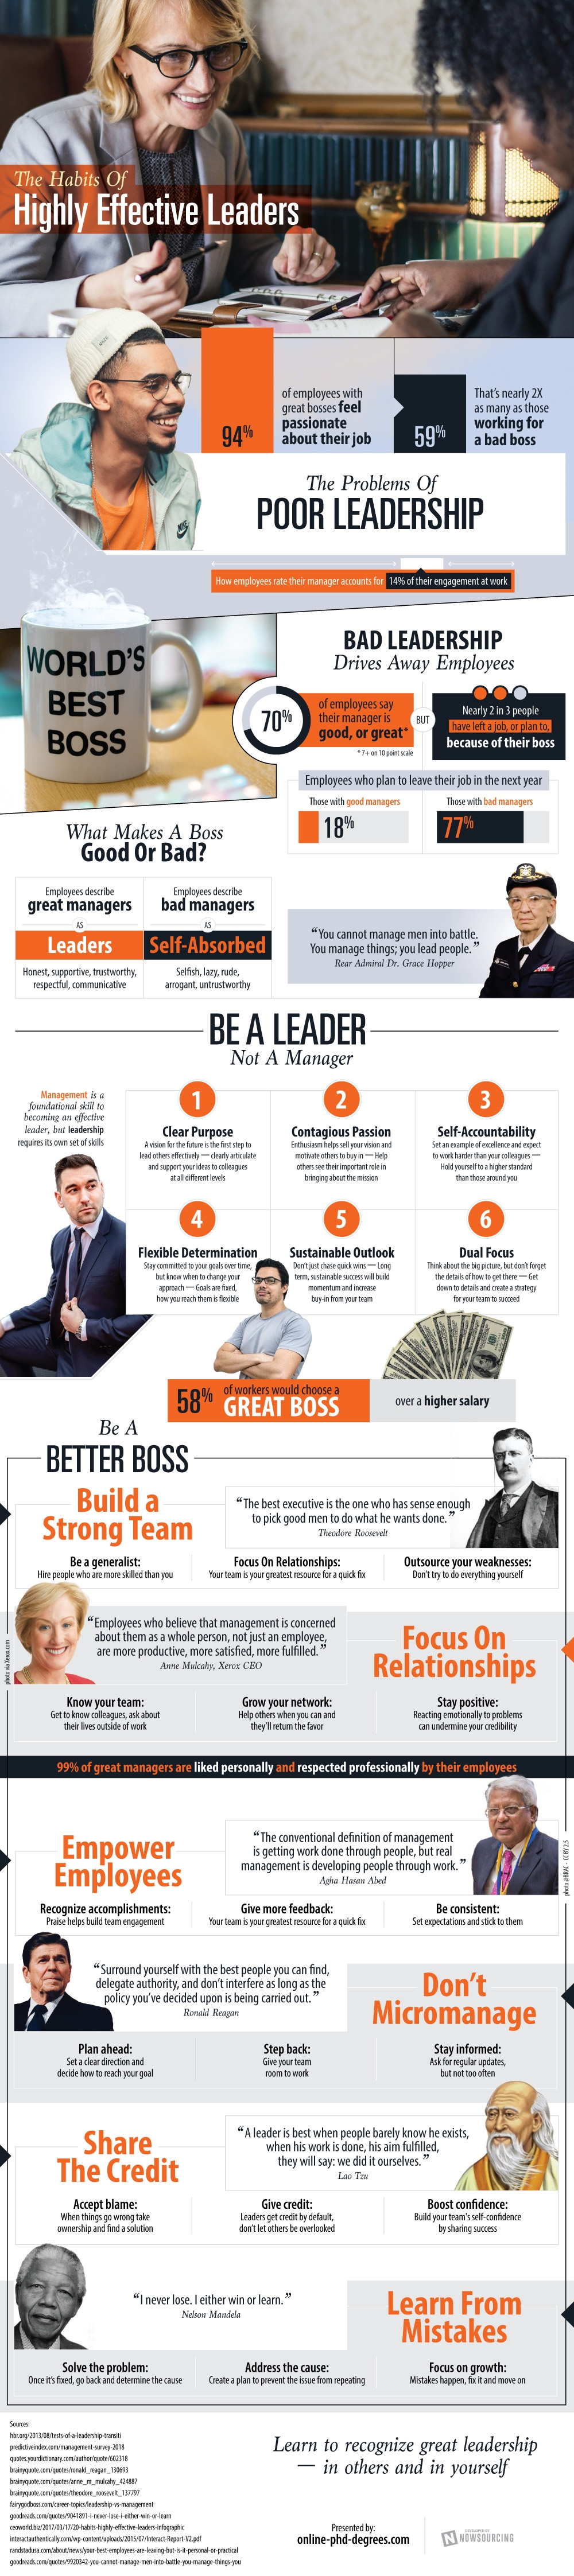 The Habits of a Good Boss [Infographic]